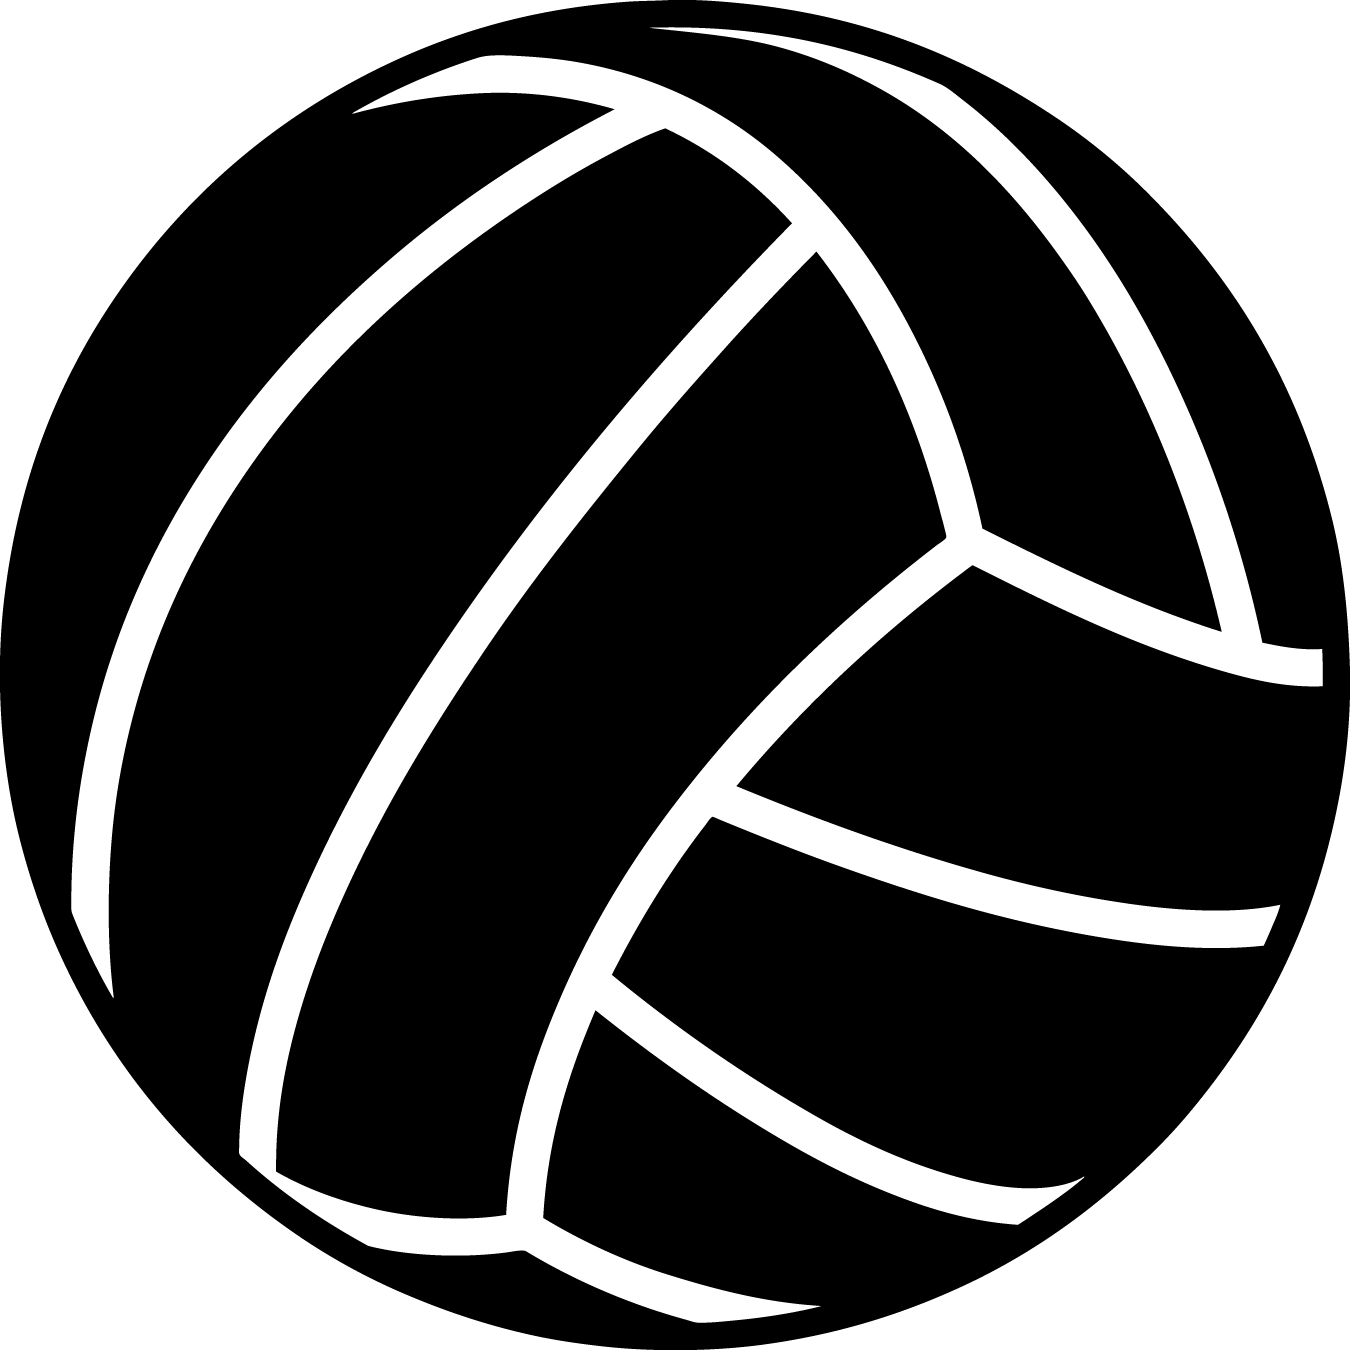 Black clipart volleyball Volleyball Outline Volleyball Outline Volleyball